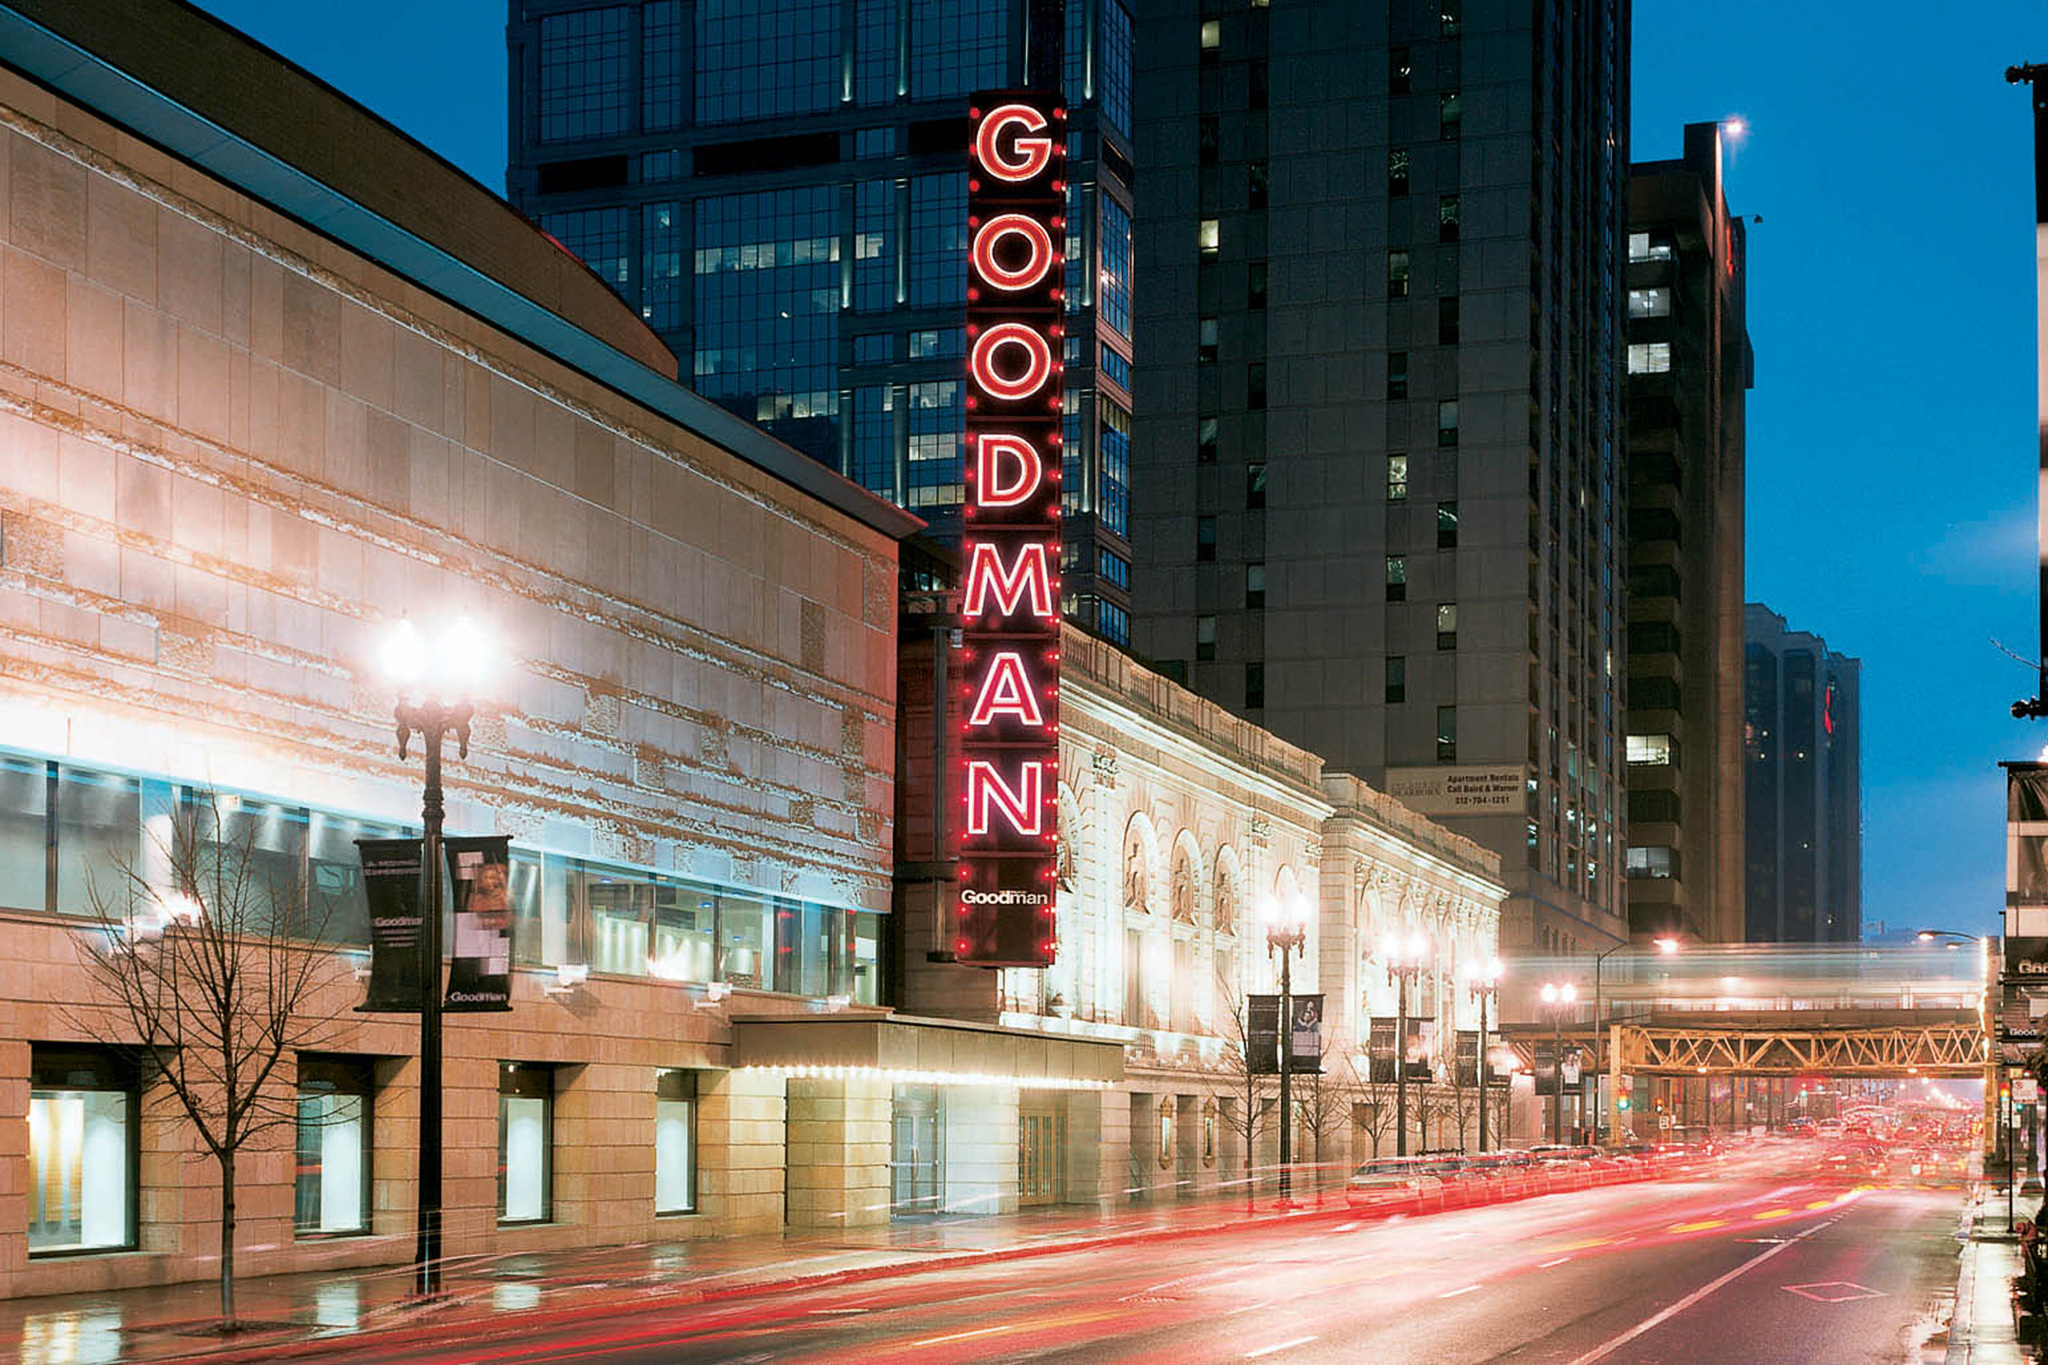 GoodmanTheater.Venue.jpg